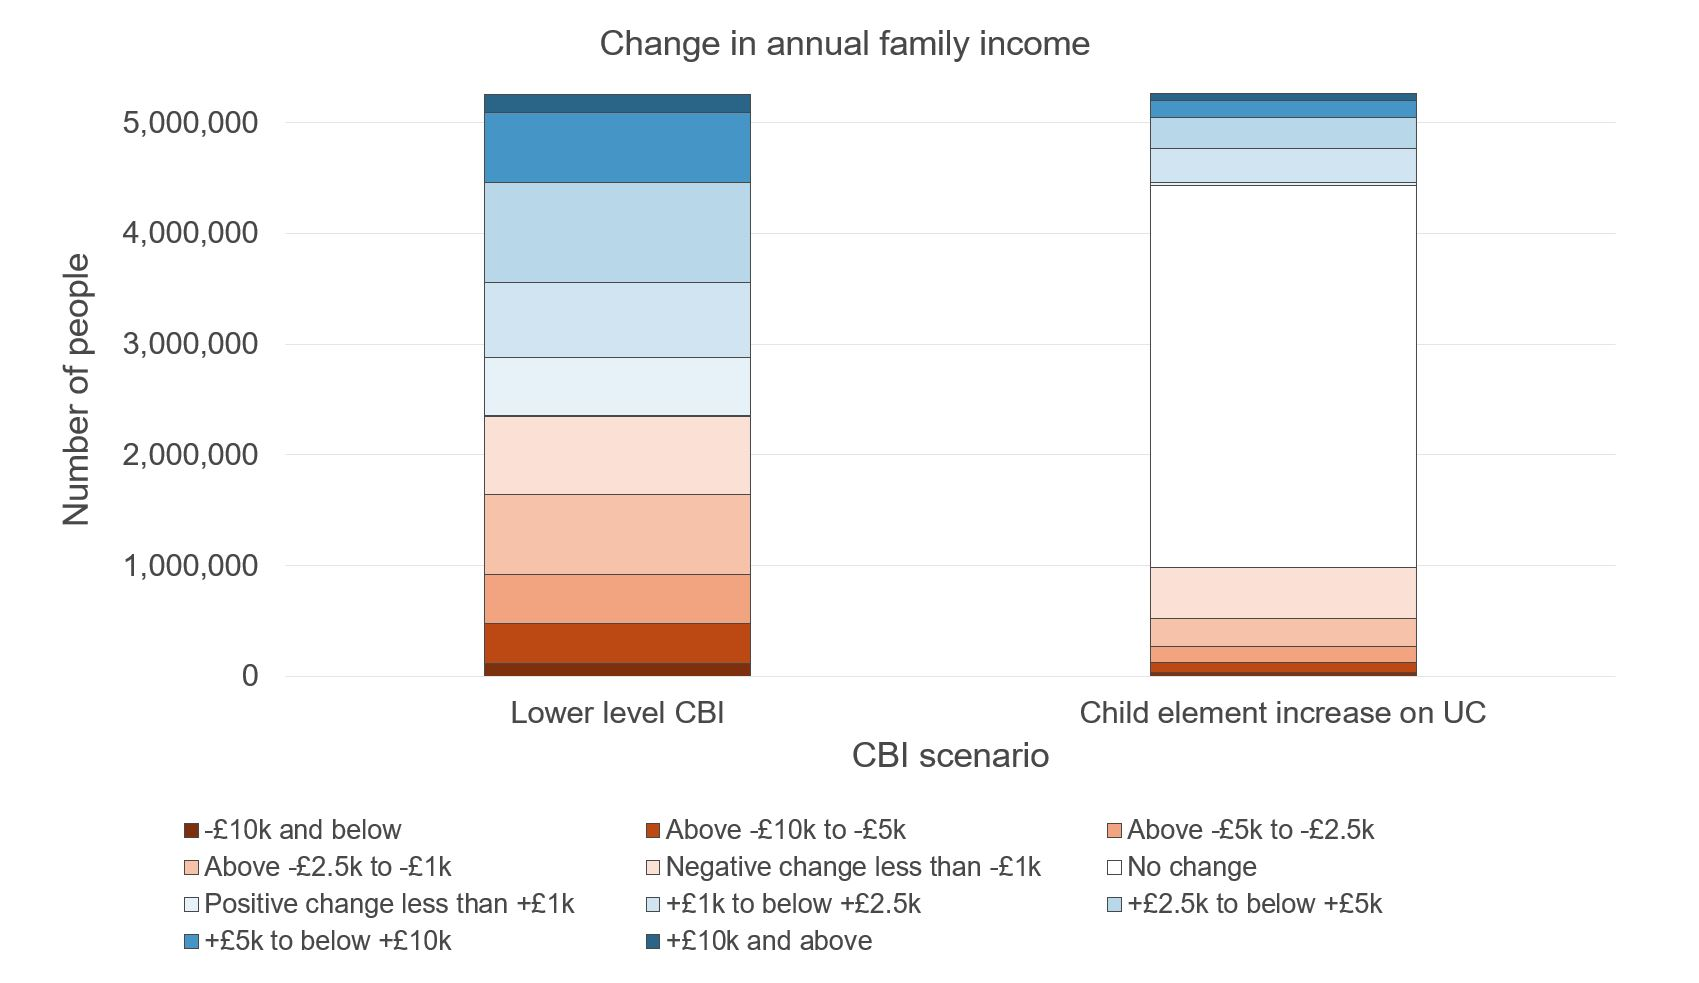 Figure showing change in annual family income